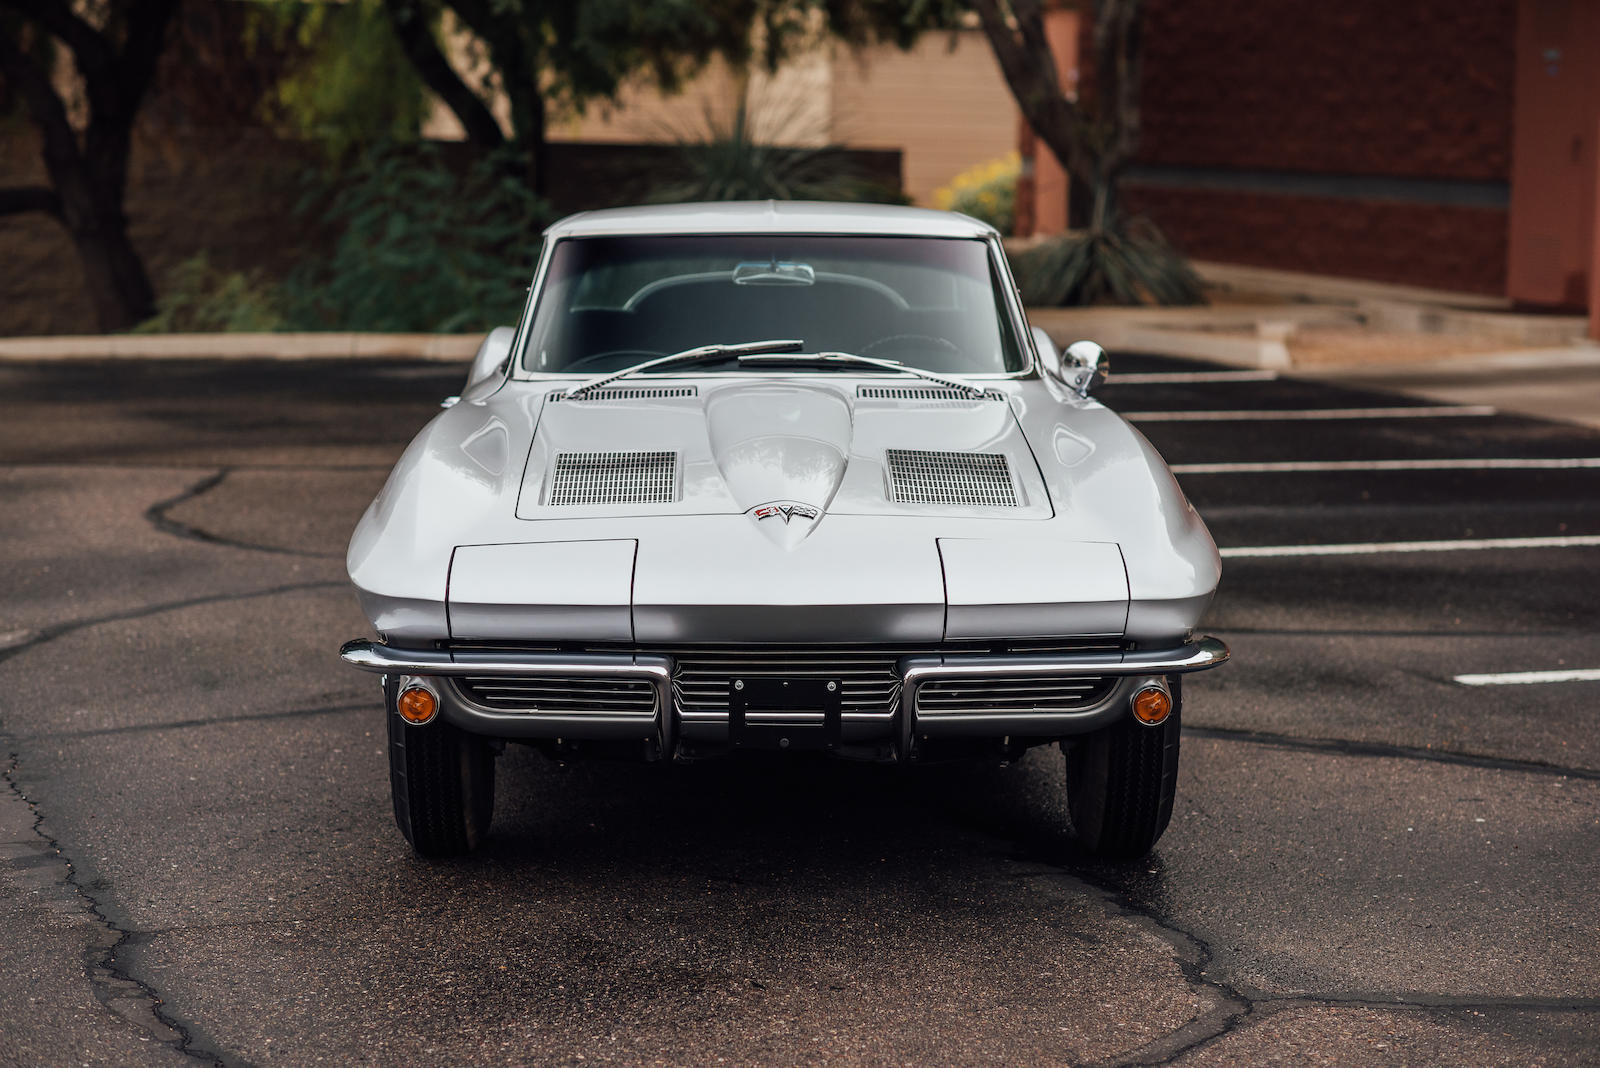 1963 Chevrolet Corvette front view